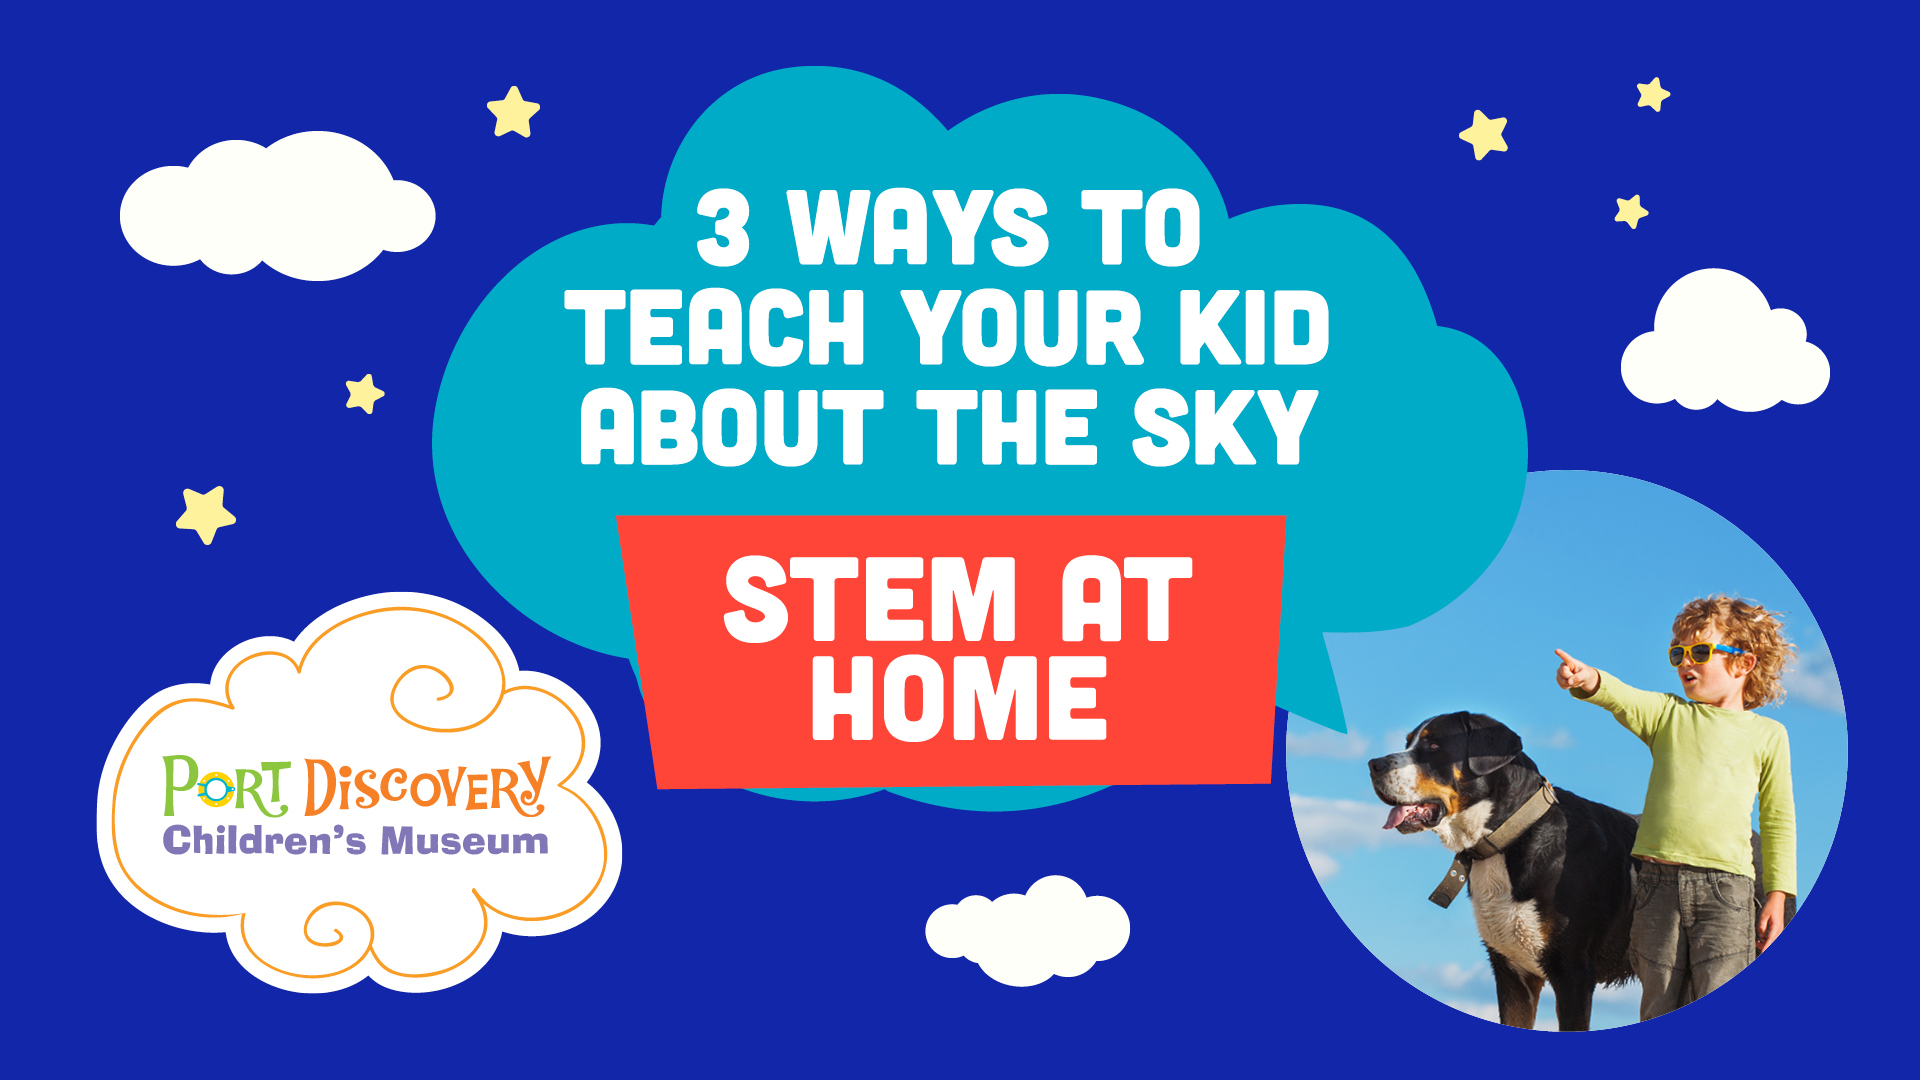 3 Ways to Teach Your Kid About the Sky